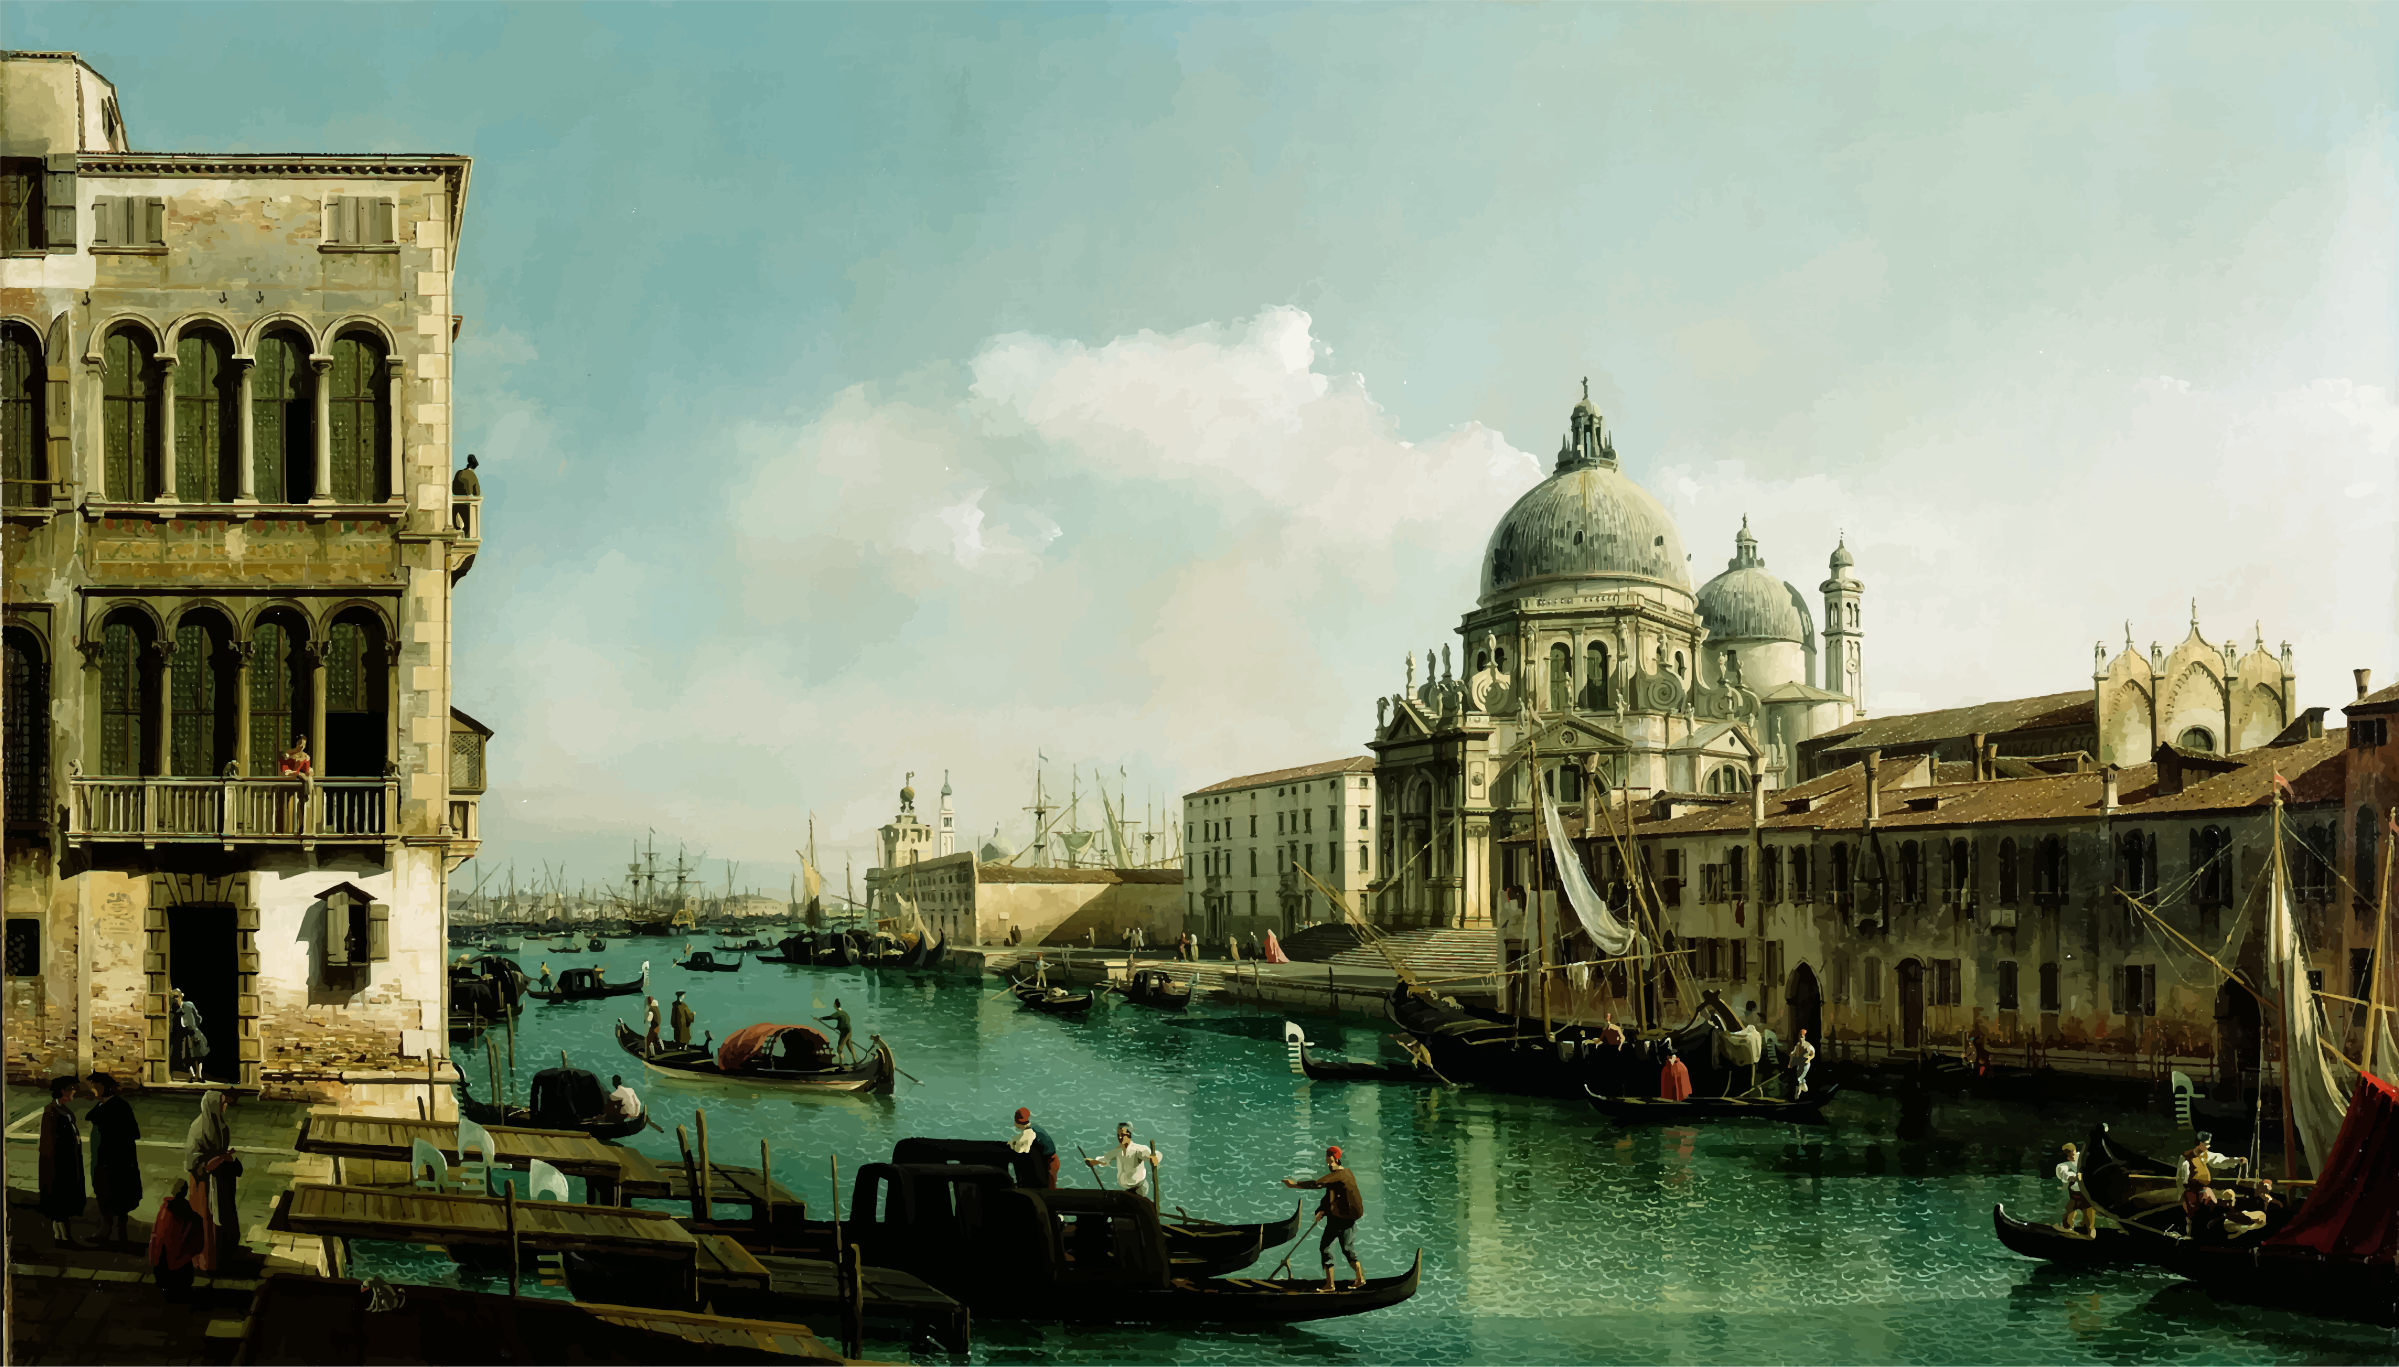 View of the Grand Canal and the Dogana By Bernardo Bellotto by GDJ